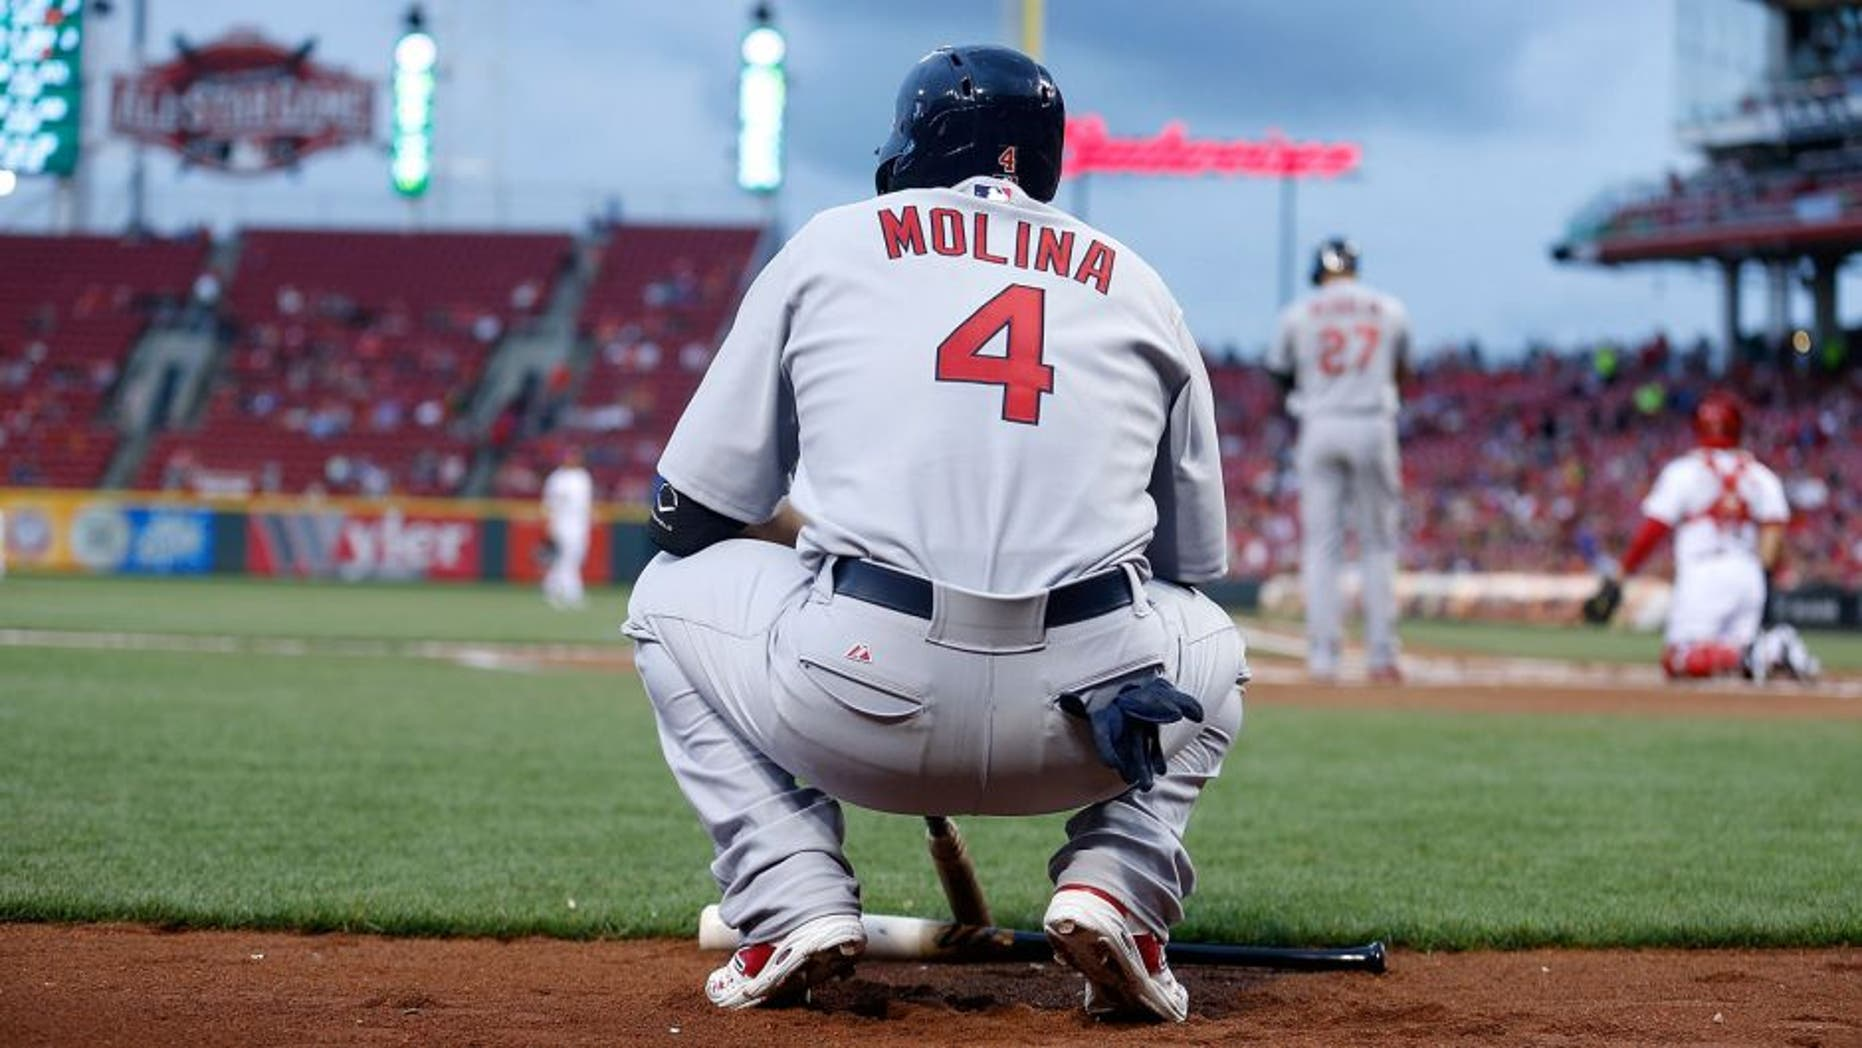 CINCINNATI, OH - SEPTEMBER 11: Yadier Molina #4 of the St. Louis Cardinals waits for his chance to bat during the game against the Cincinnati Reds at Great American Ball Park on September 11, 2015 in Cincinnati, Ohio. (Photo by Kirk Irwin/Getty Images)